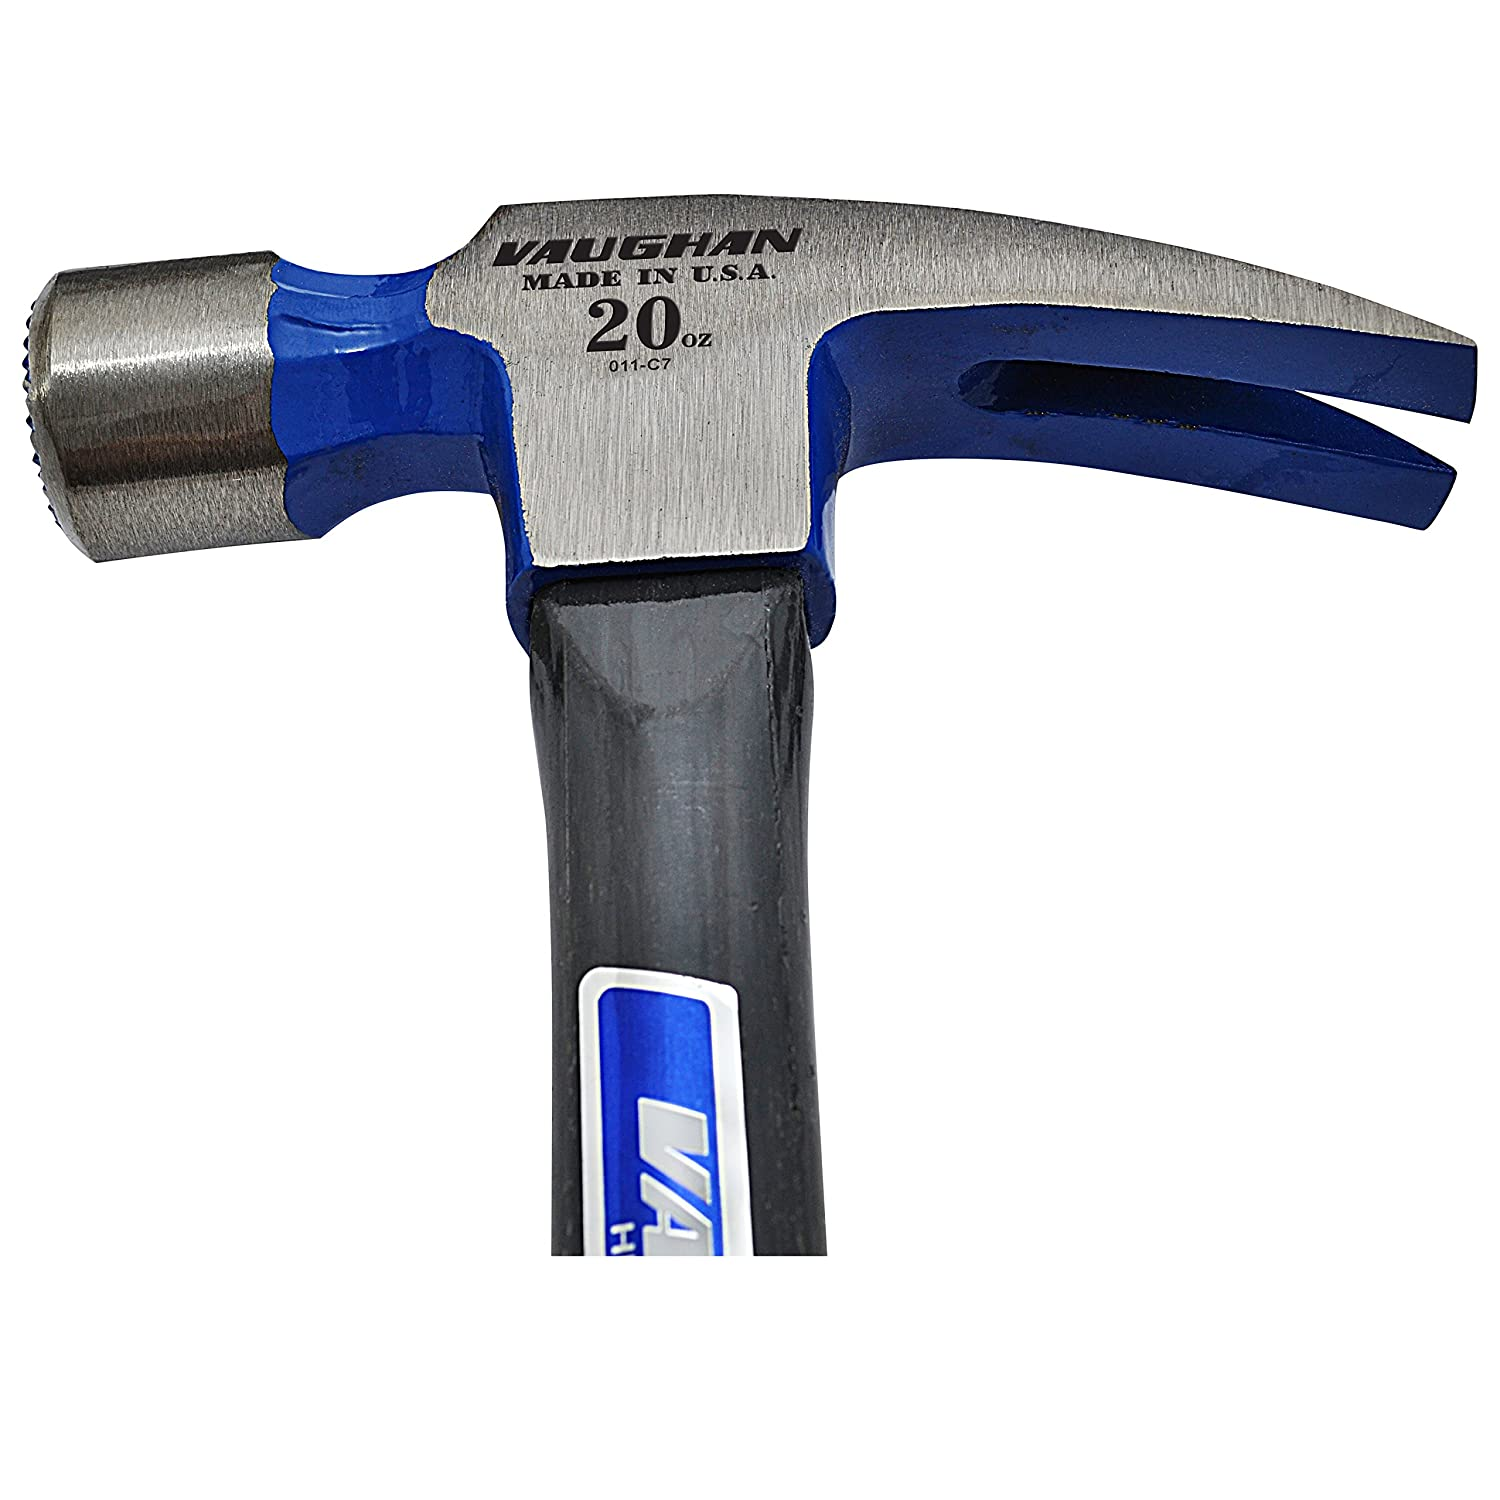 Vaughan FS999ML 20-Ounce -Inch999-Inch Straight Claw Hammer Straight Fiberglass Handle 16-Inch Long Vaughan /& Bushnell 2450-8095 Claw Hammers Hand Tools Milled Face